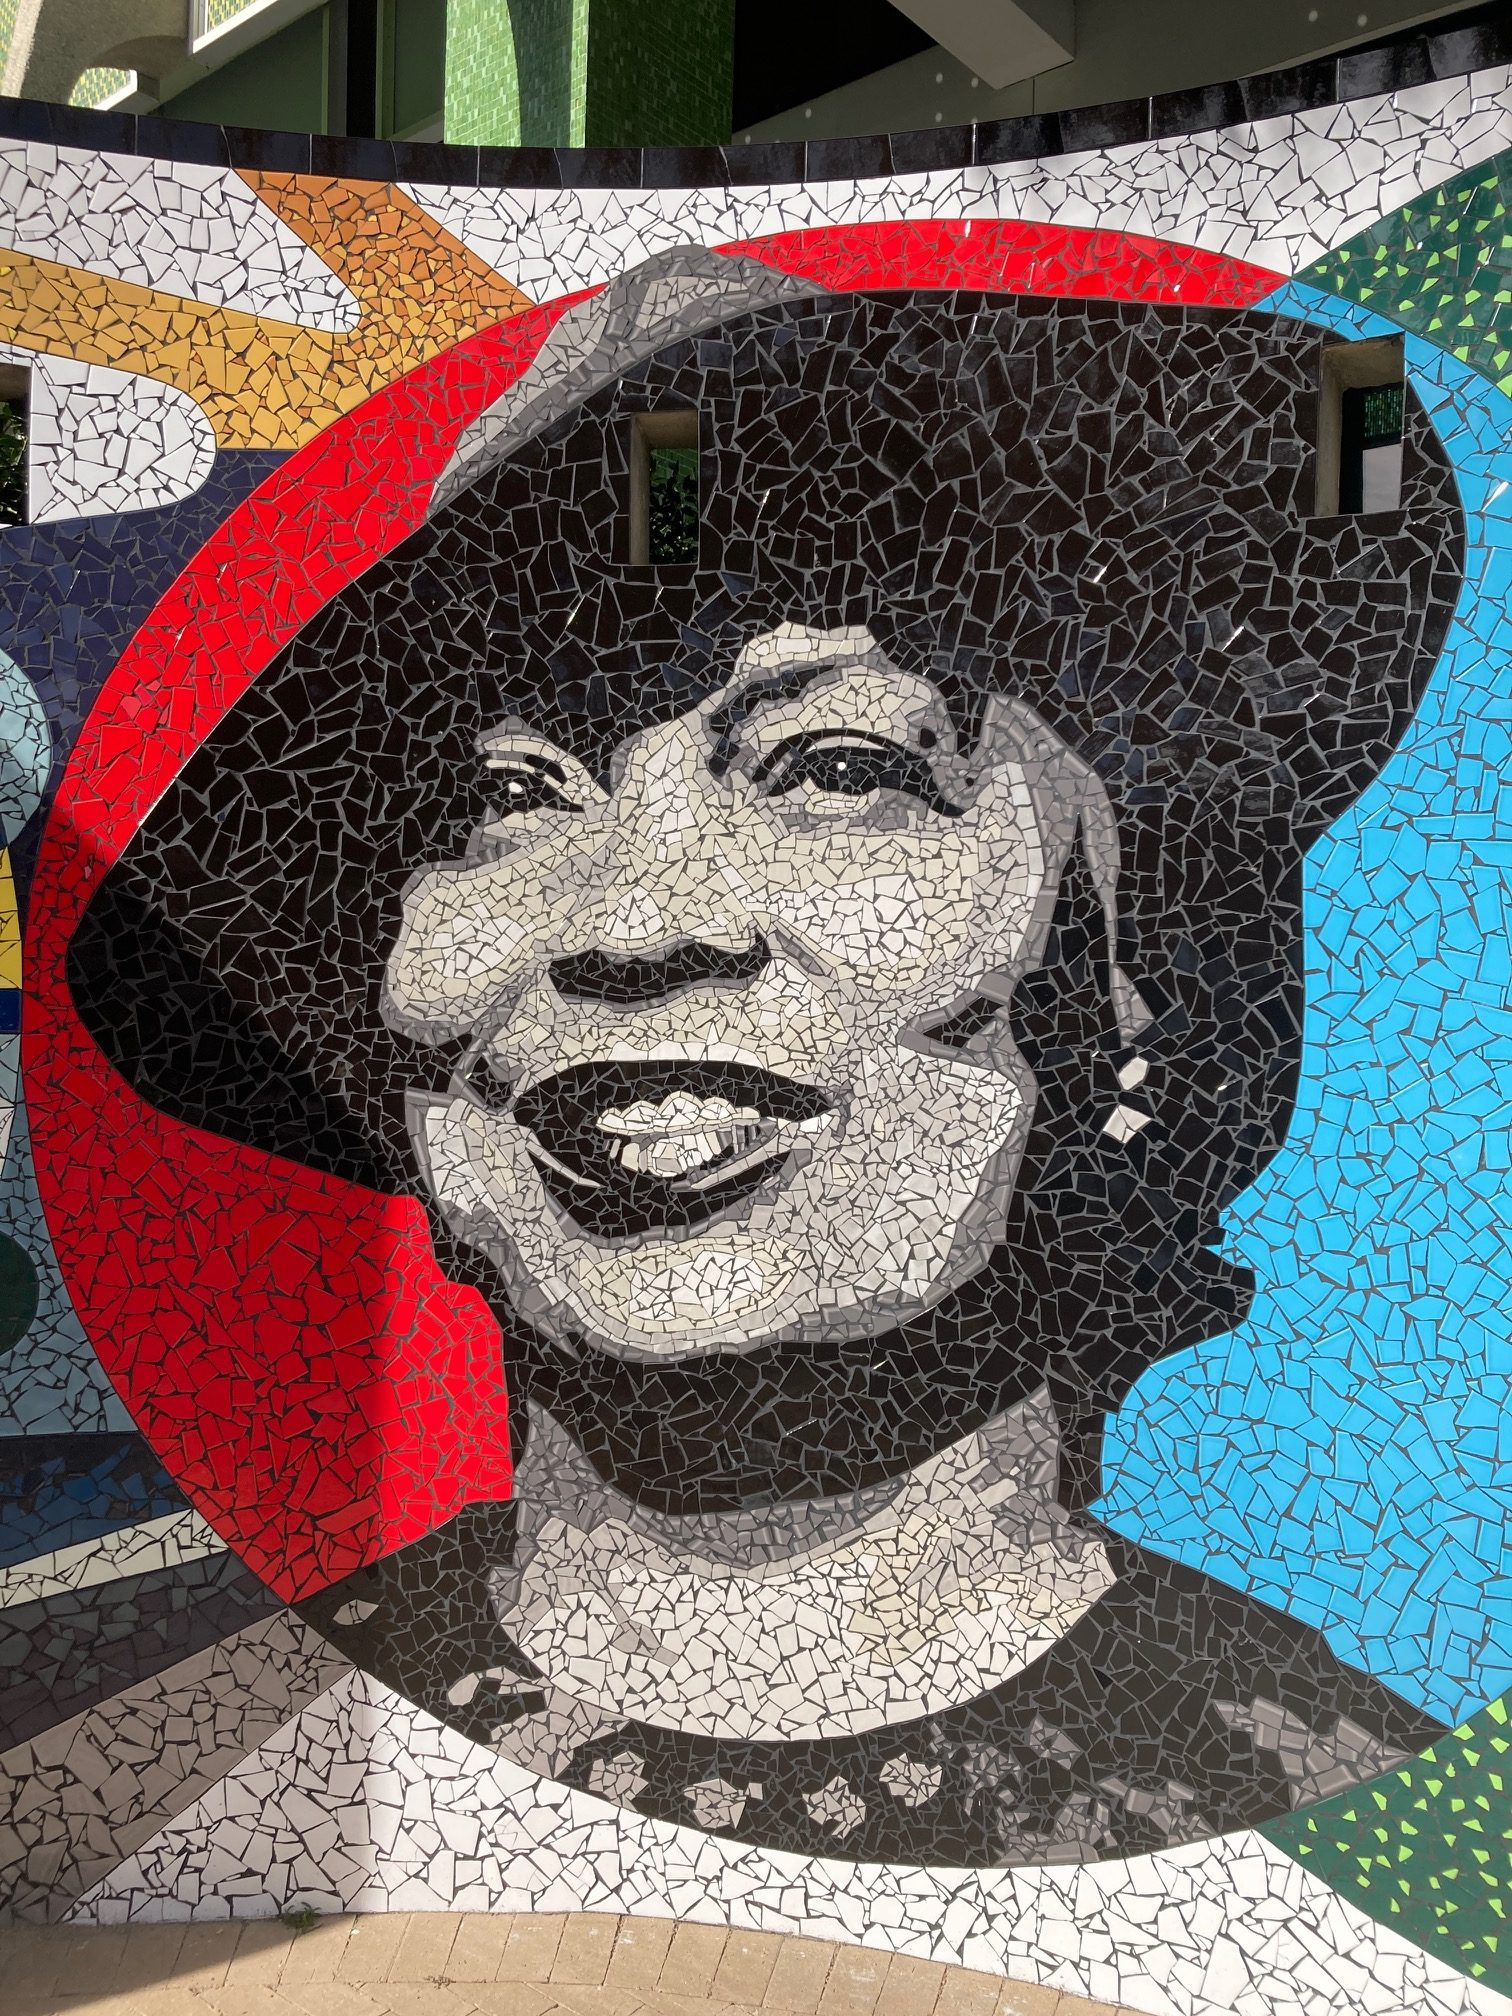 Nora Neale Hurston mural at the Jessie duPont Ball Center in Jacksonville, Florida.